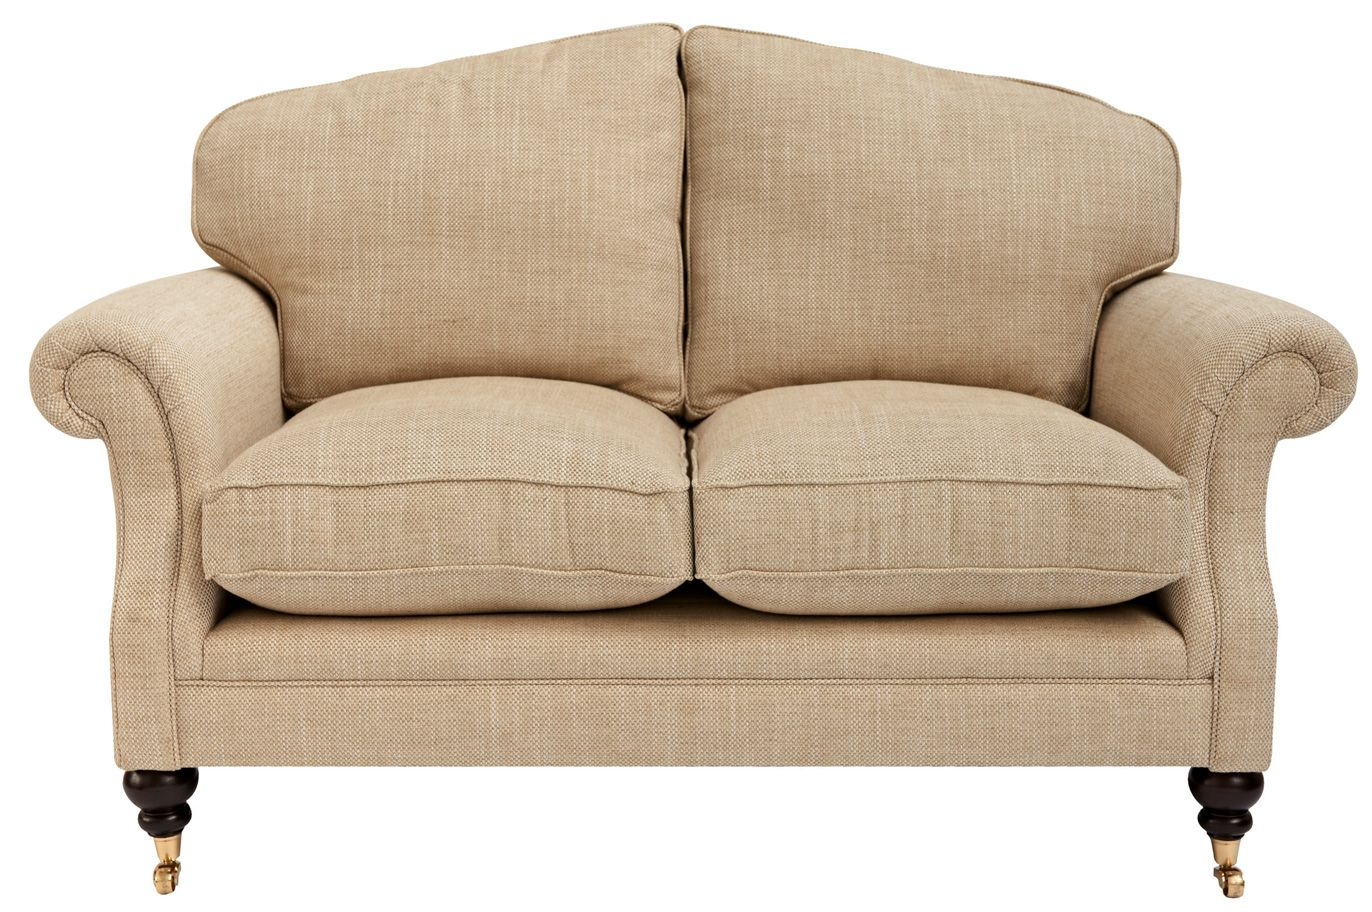 Laura Ashley Furniture | Hertford Upholstered 2 Seater Sofa ...